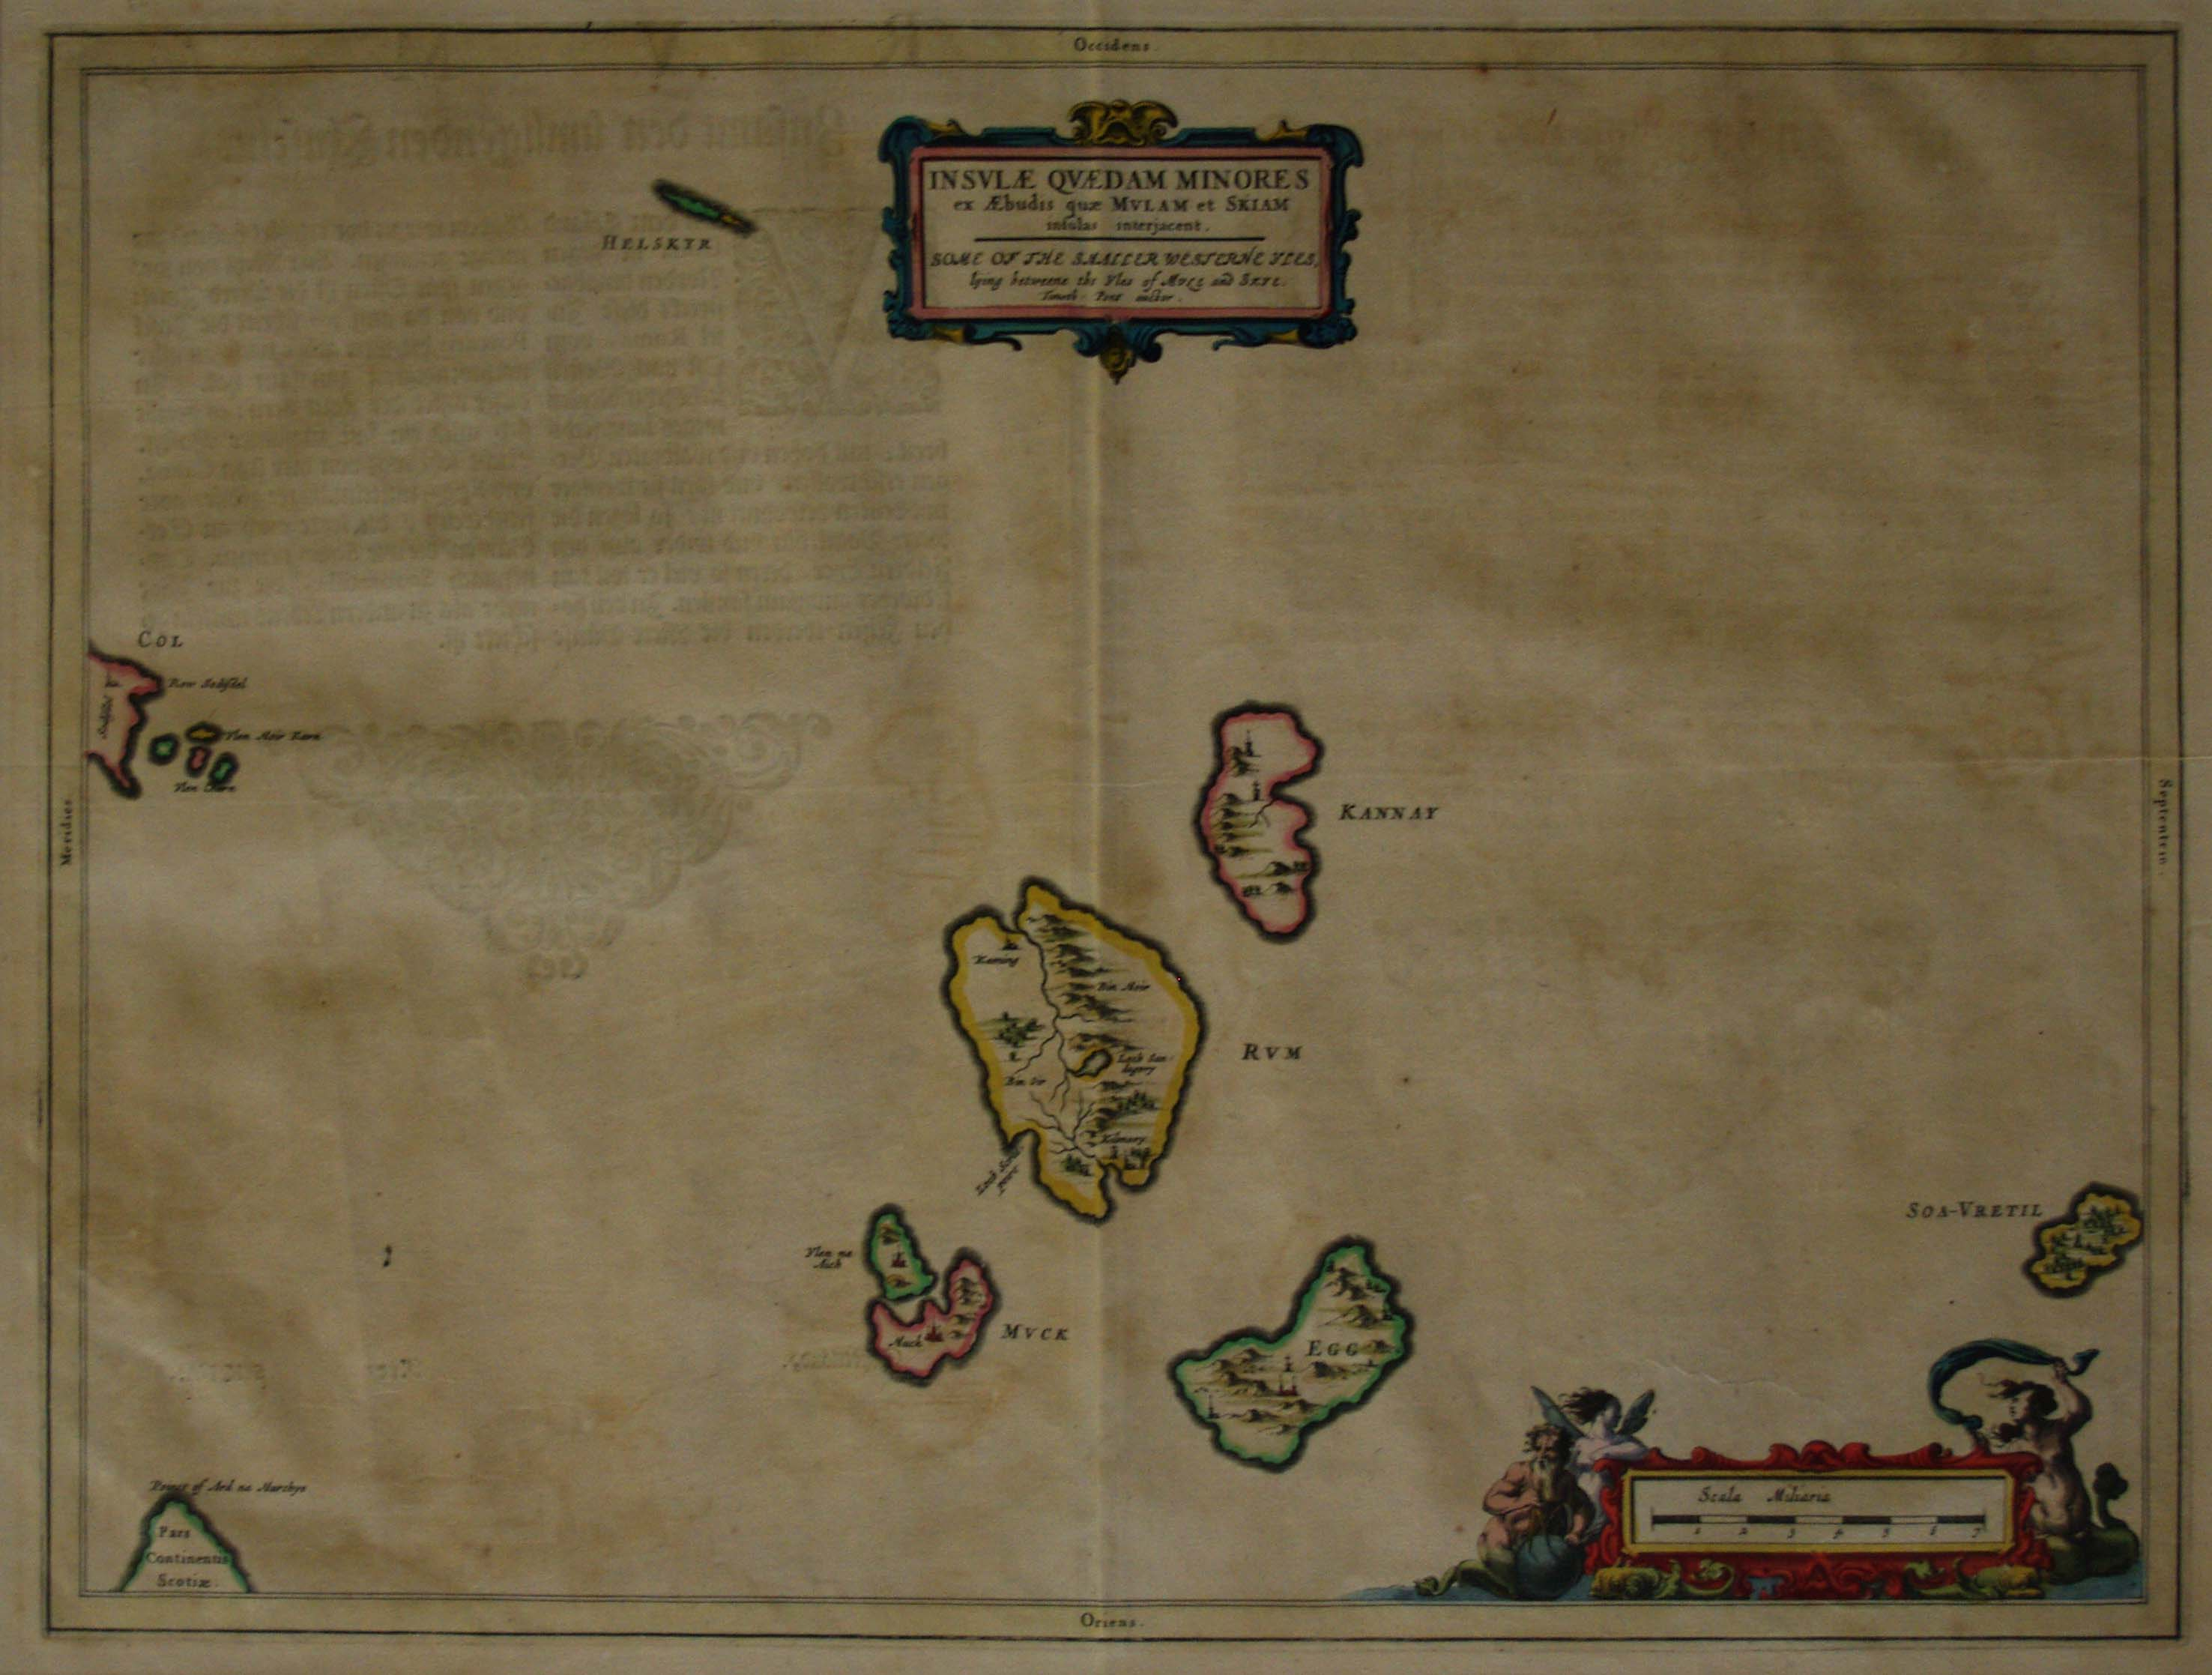 Blaeu's Small Isles, click for full res image